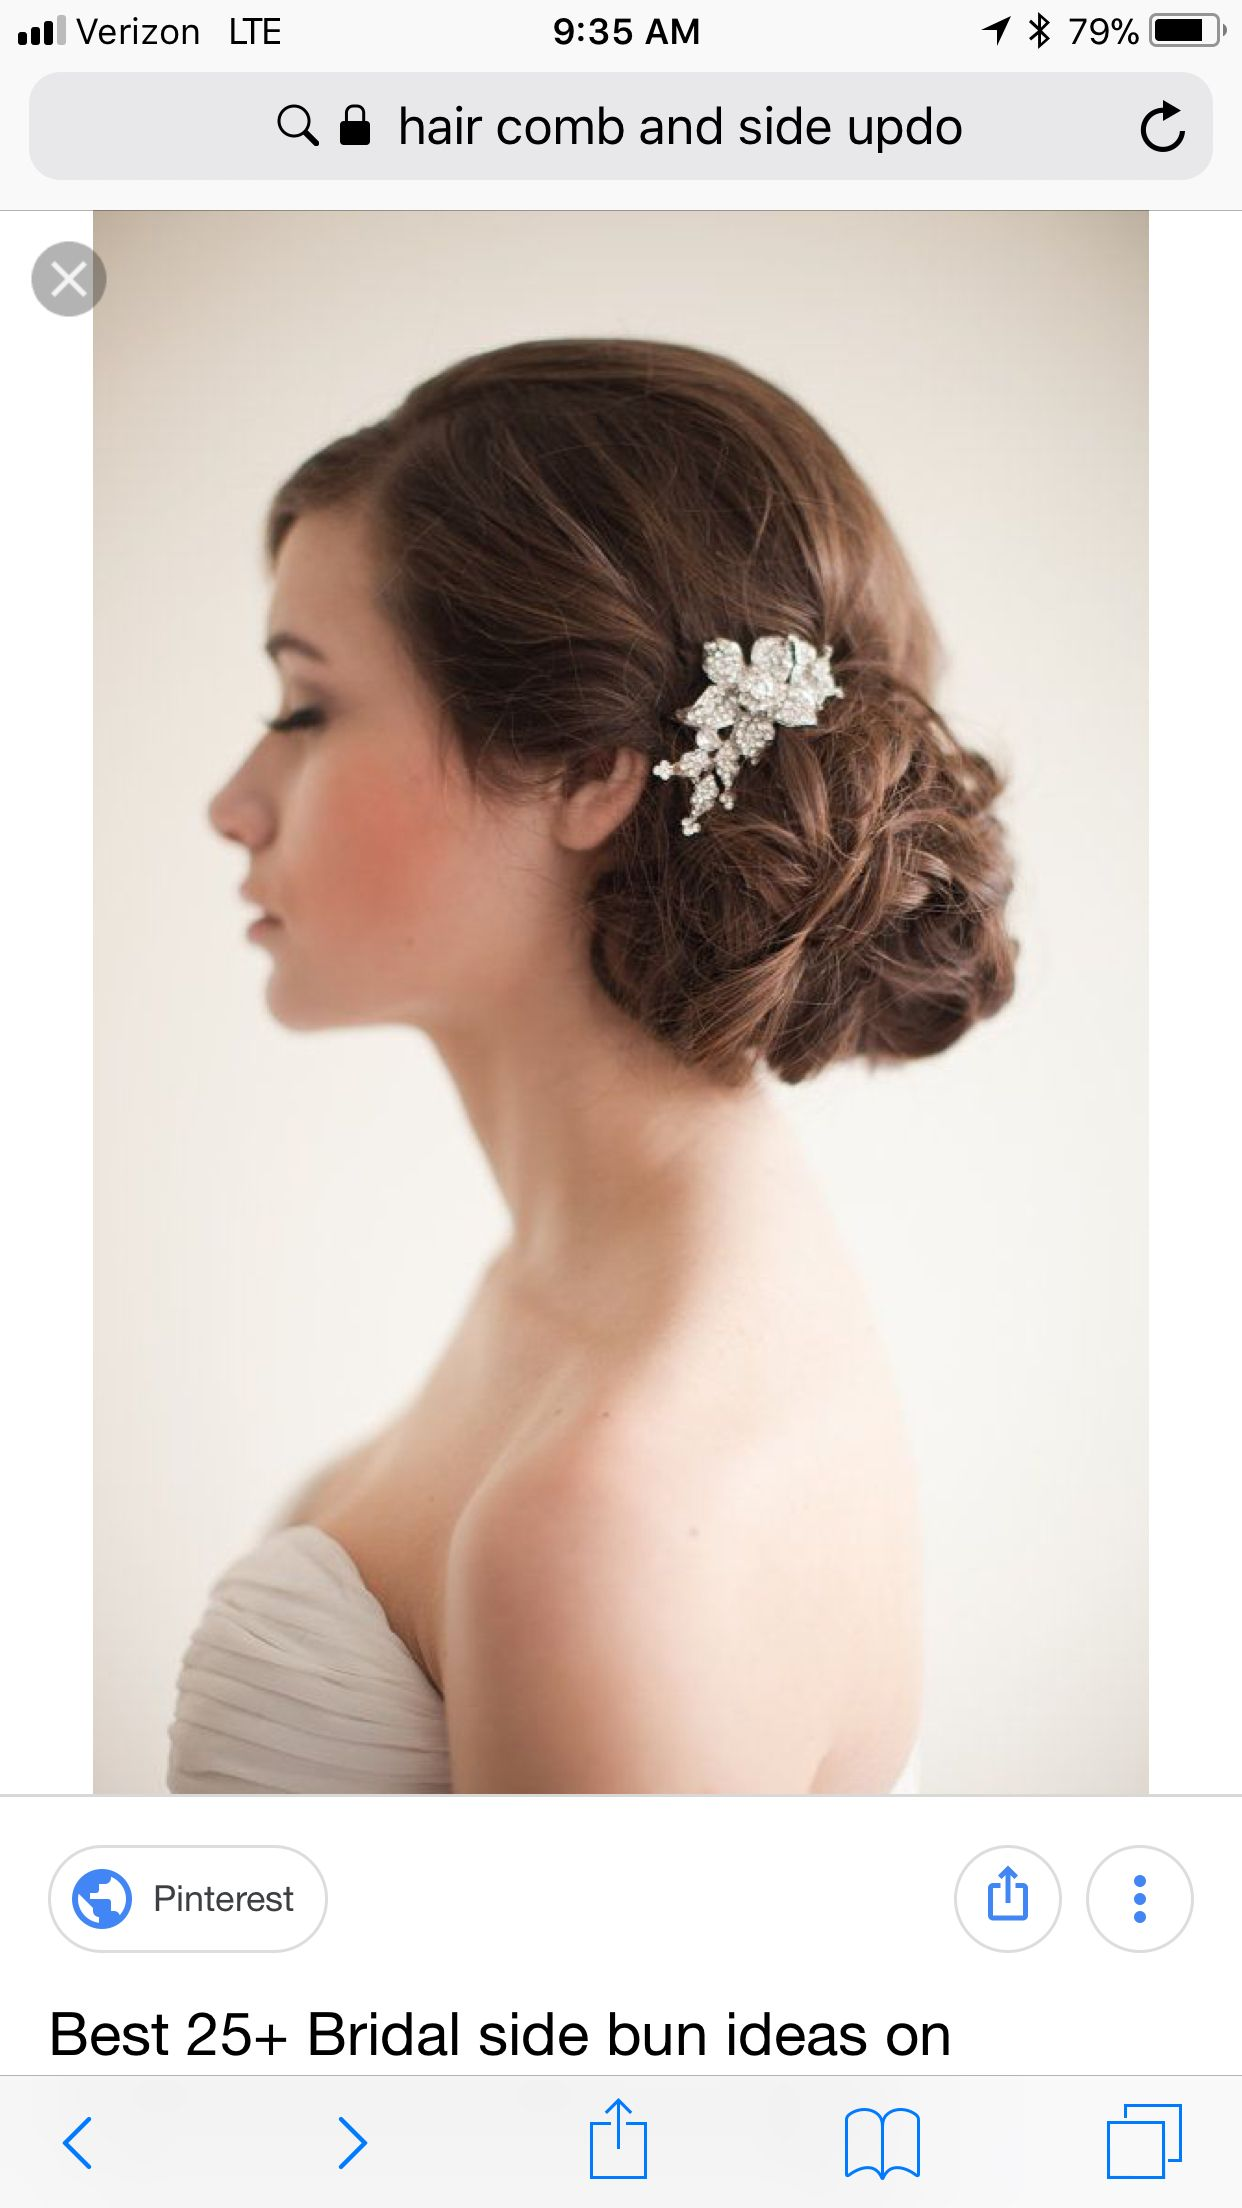 pin by liz cattaneo on wedding ideas | wedding hairstyles